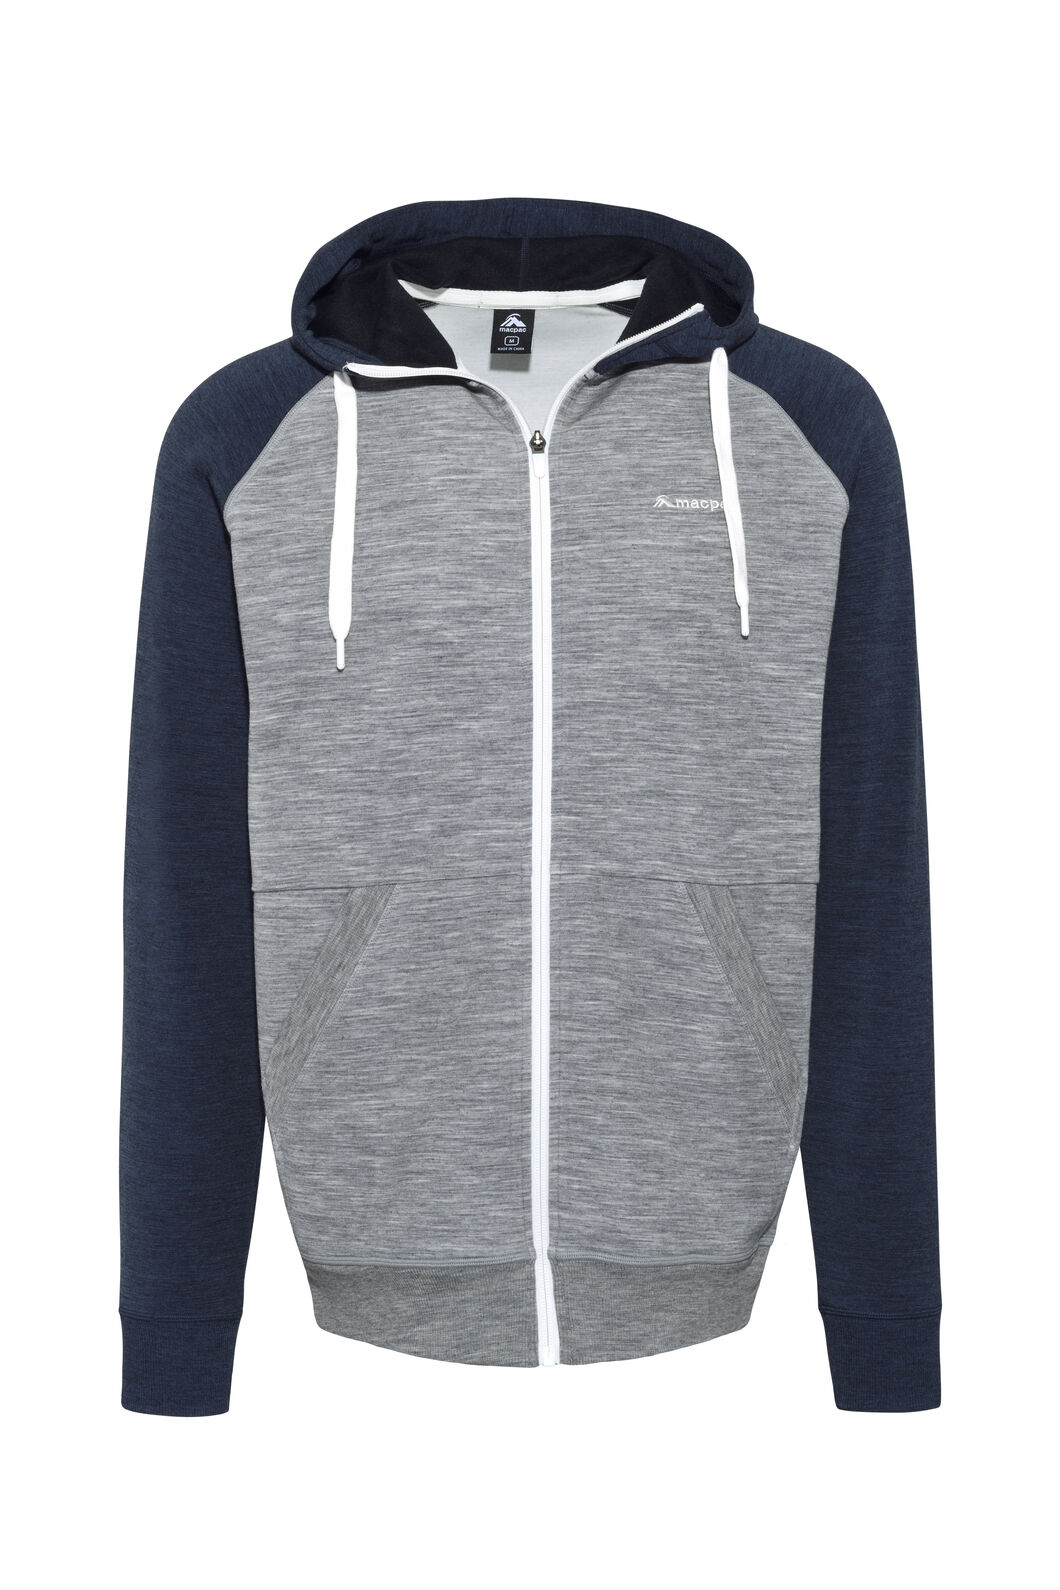 Macpac Escape Merino Hoody - Men's, Black Iris/Grey Marle, hi-res